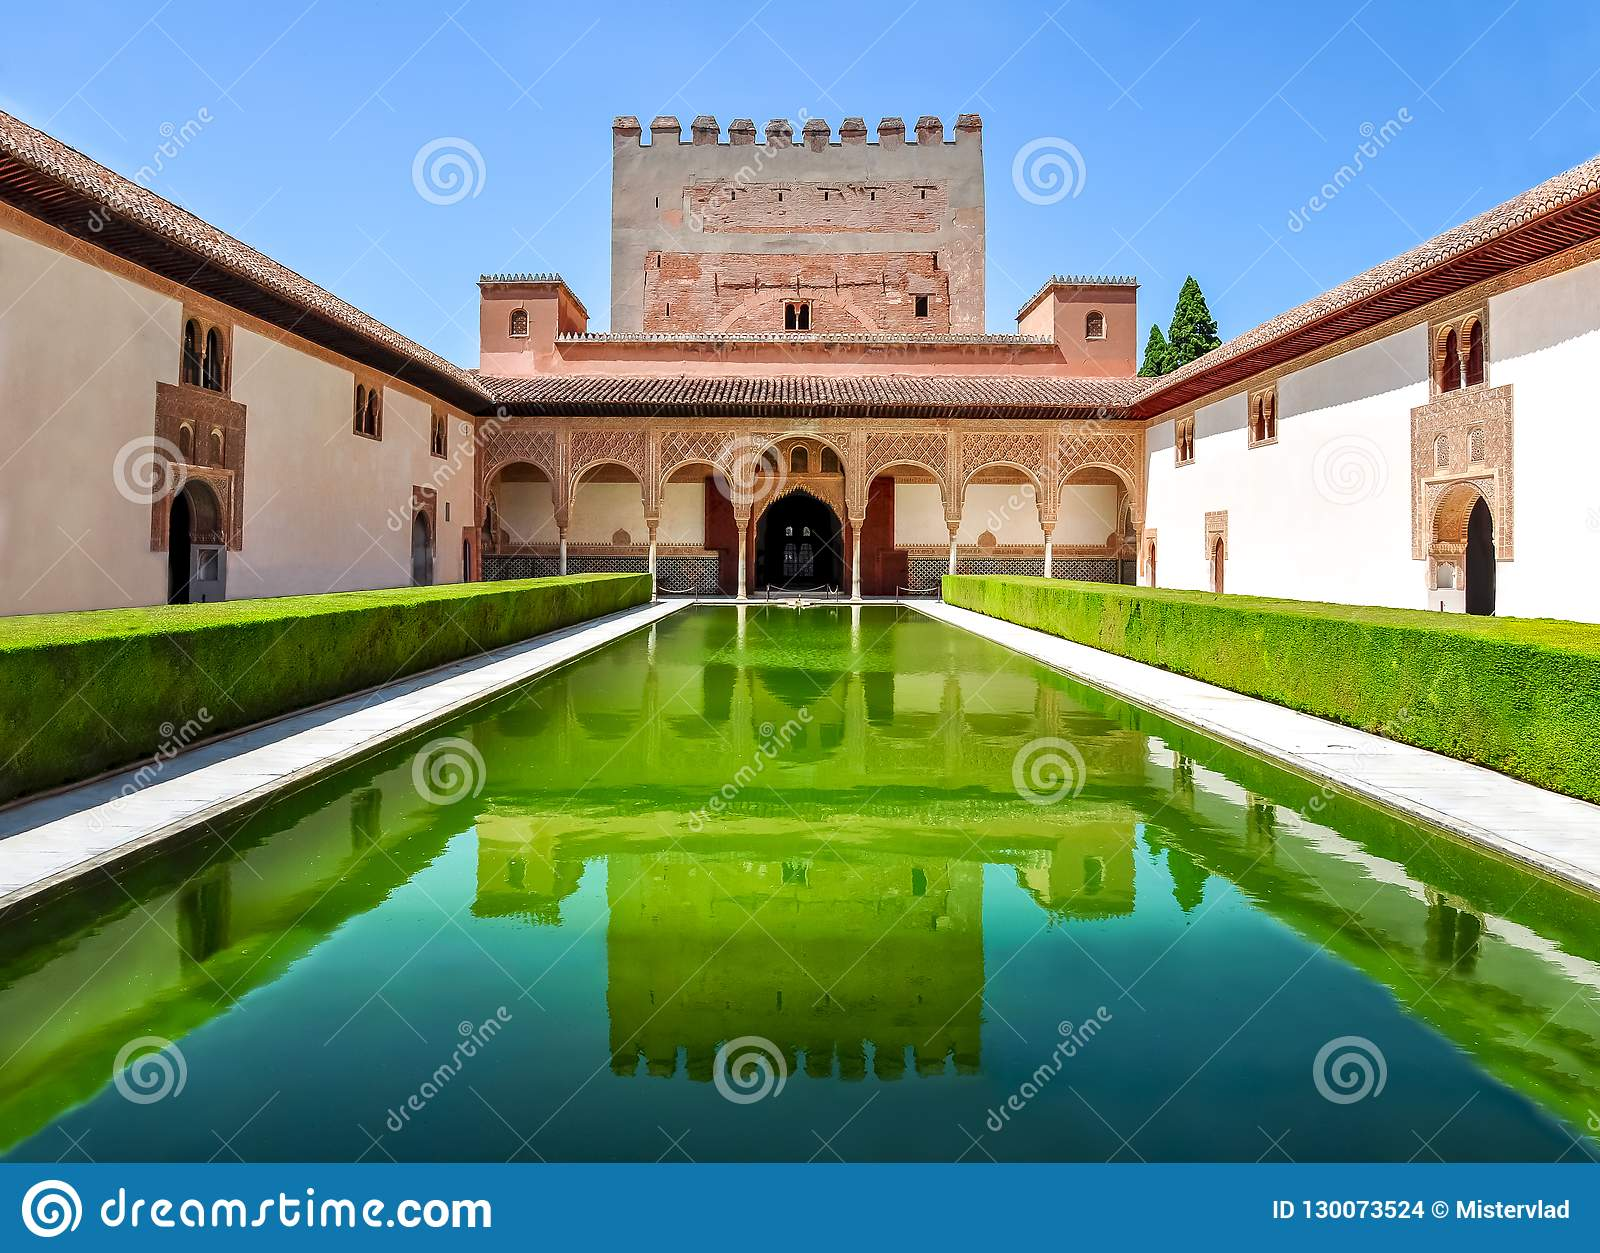 Court of the Myrtles in Nasrid Palace in Alhambra, Granada, Spain